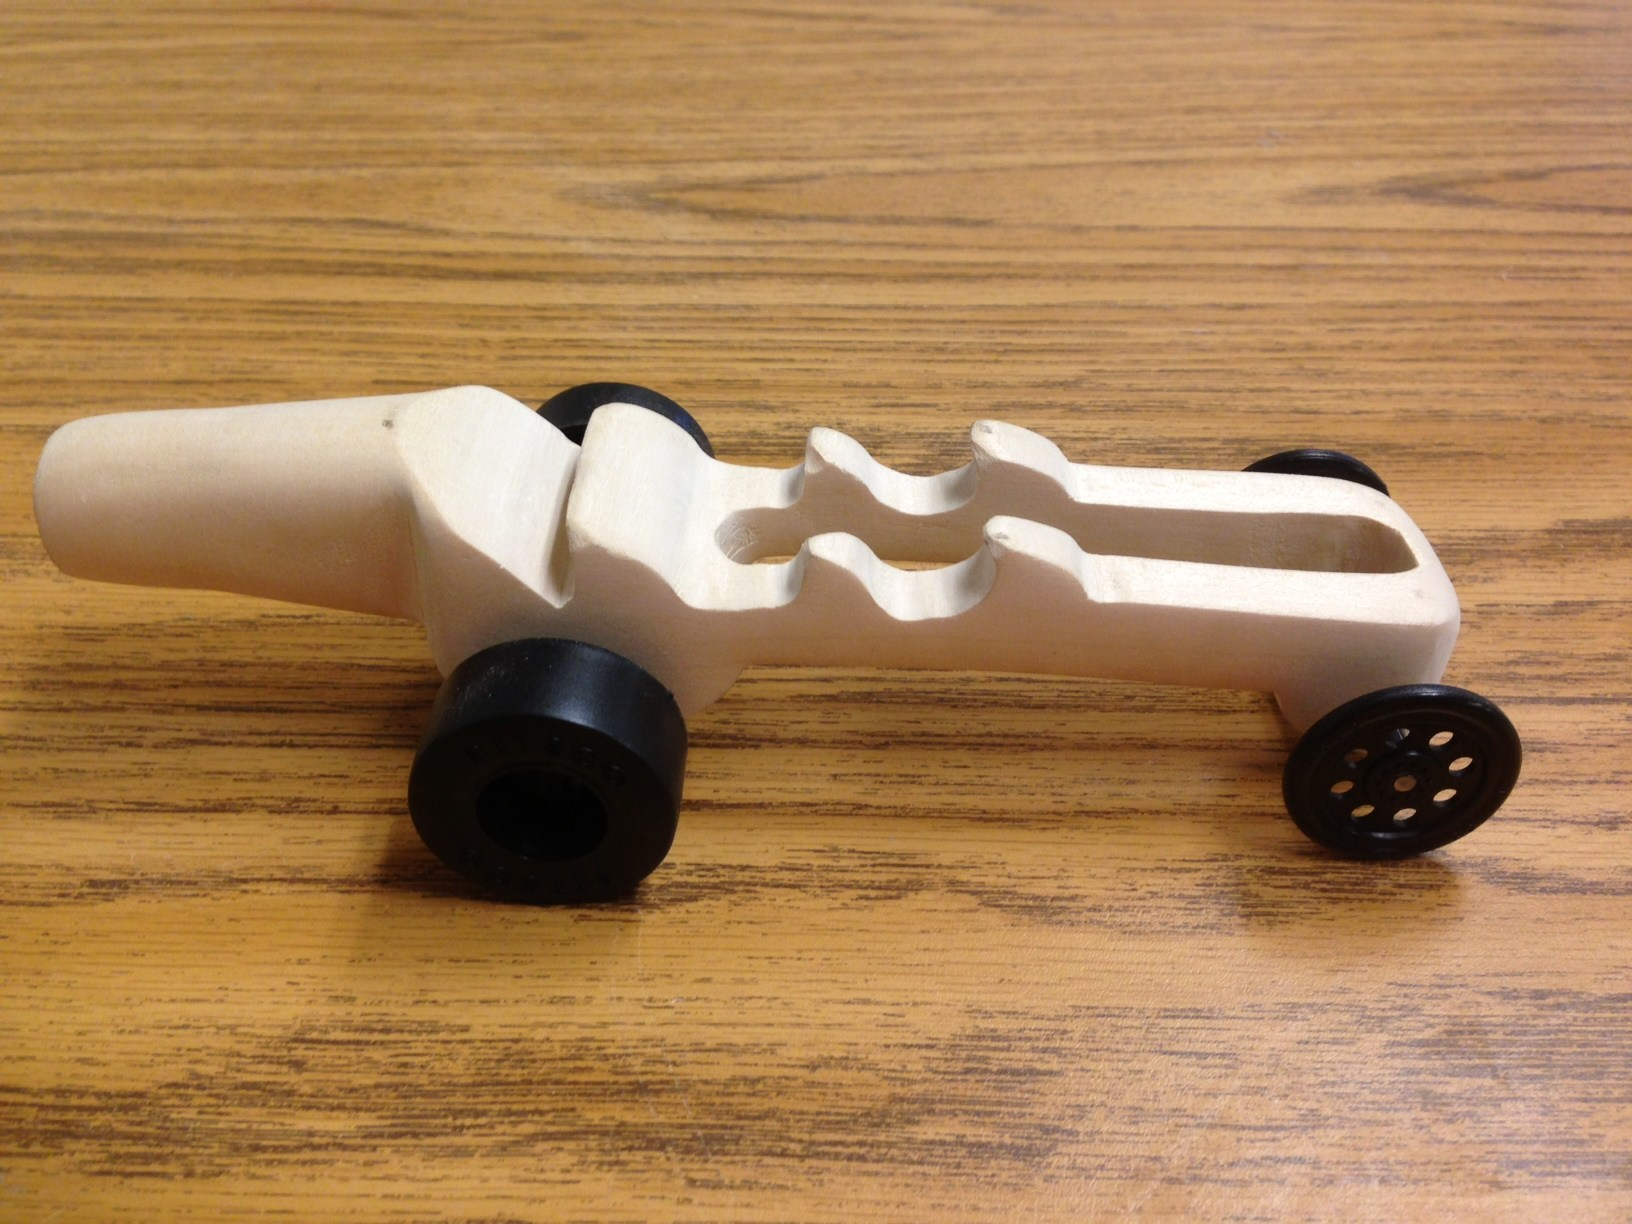 Co2 Dragster – Students – Atwater Senior Academy